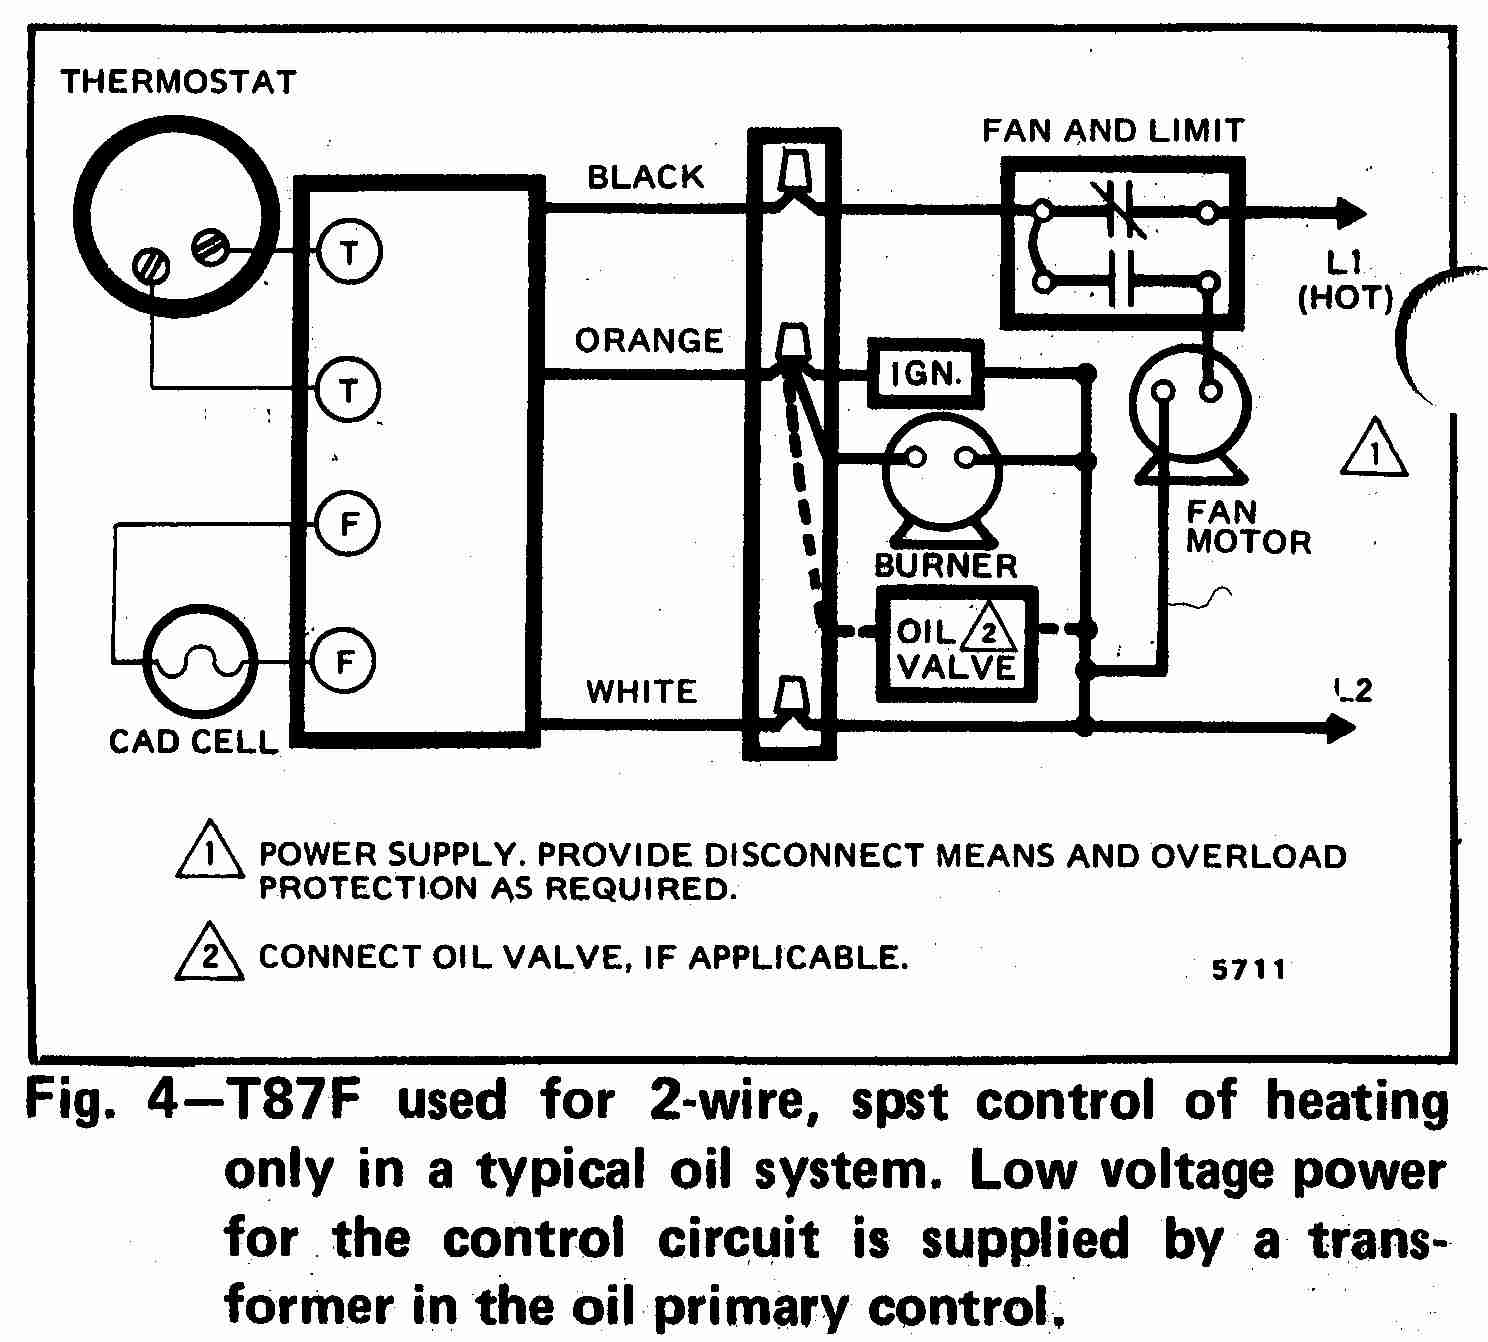 TT_T87F_0002_2W_DJF room thermostat wiring diagrams for hvac systems heil furnace thermostat wiring diagram at n-0.co